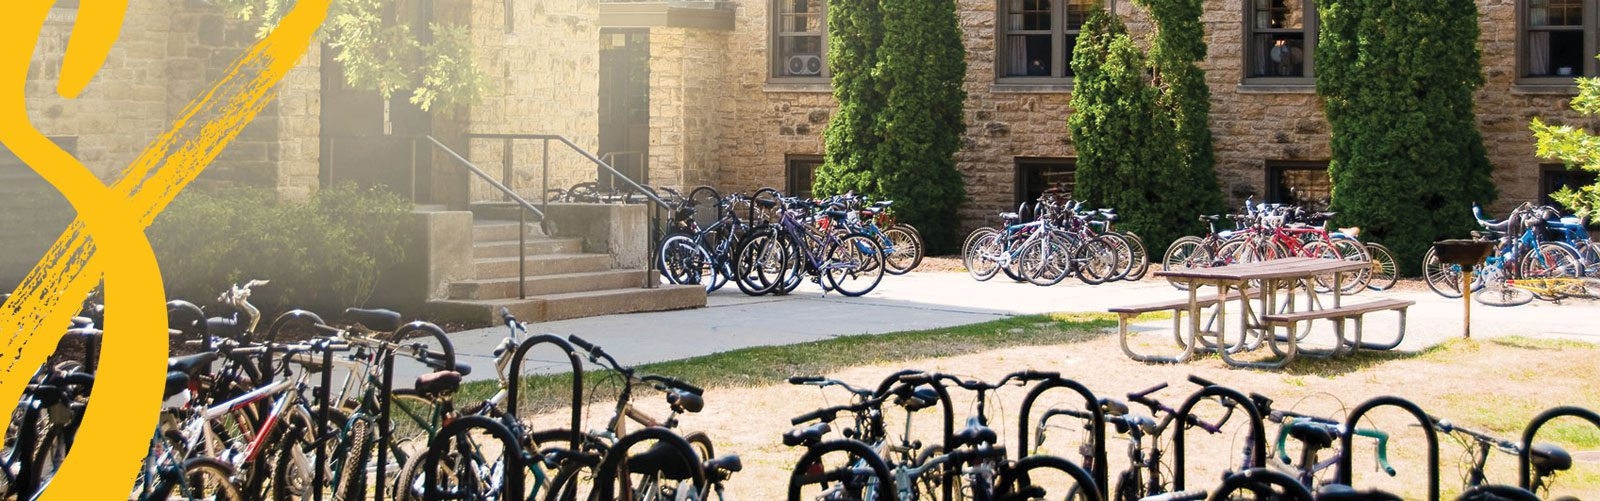 Full bikes racks outside of Kronshrage Hall